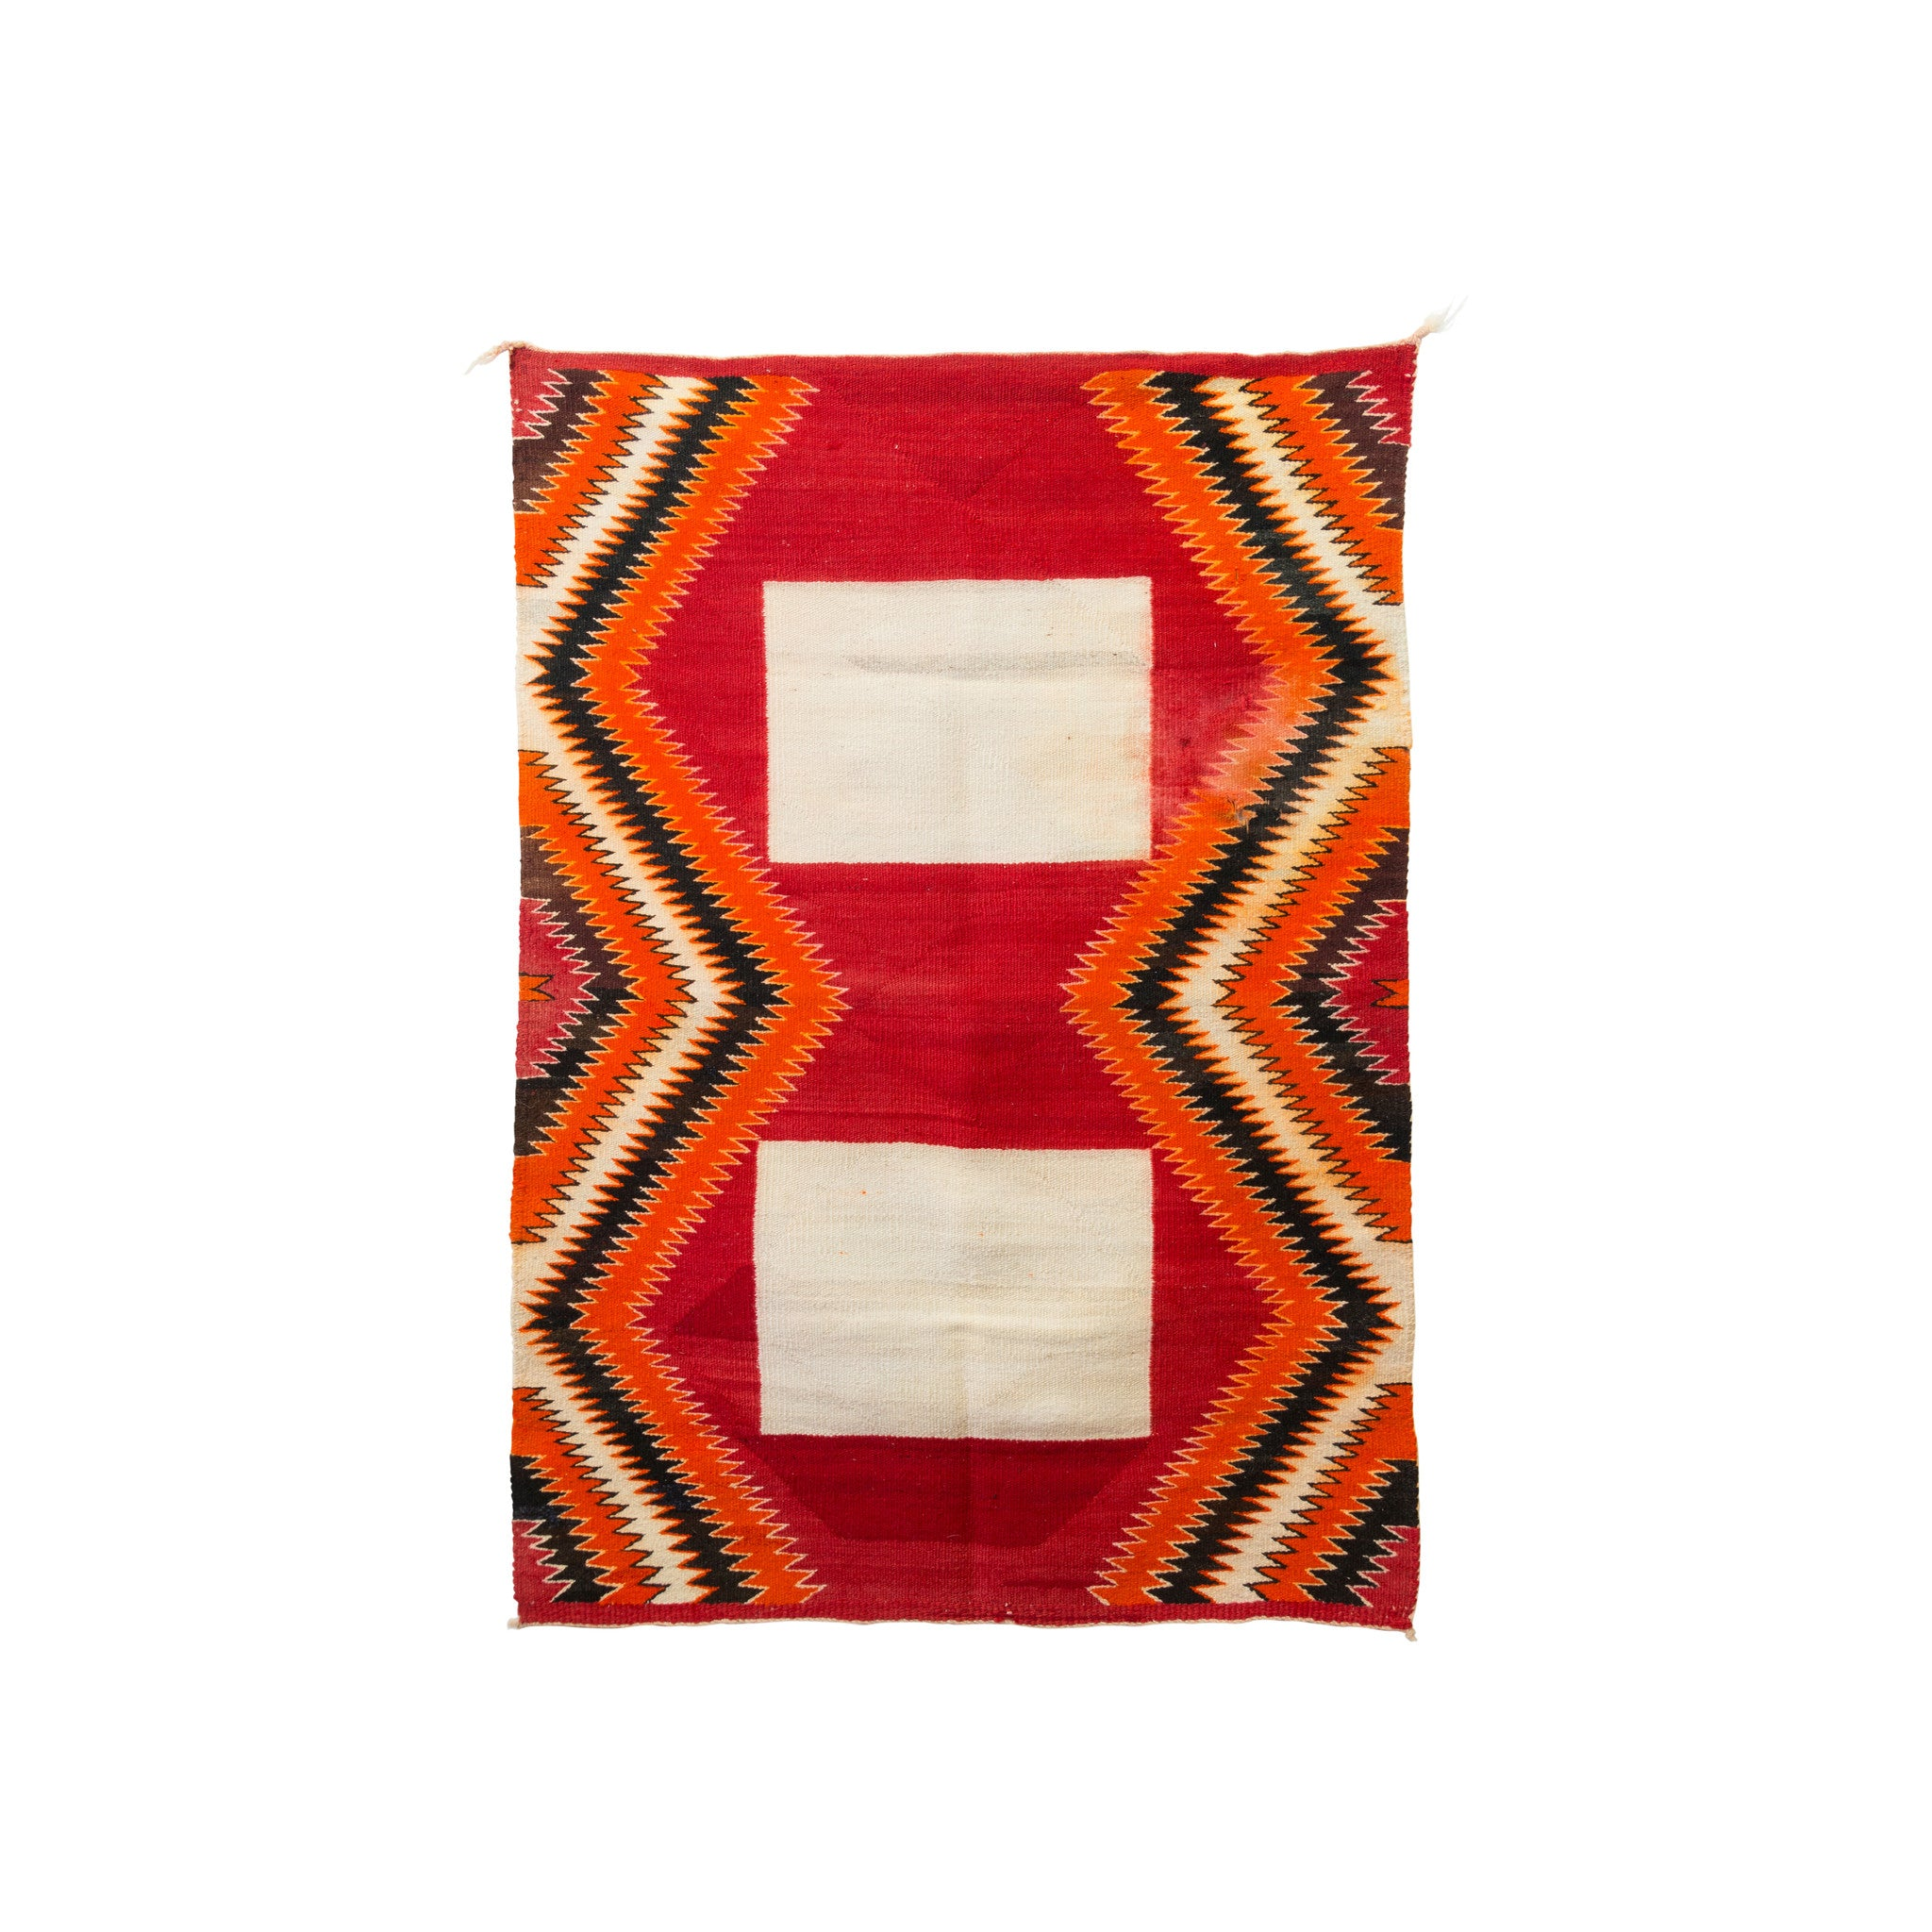 Navajo Double Saddle Blanket 4' - 6', american indian: weaving: navajo, double saddles, navajo, red mesa, sale item, southwest, weavings